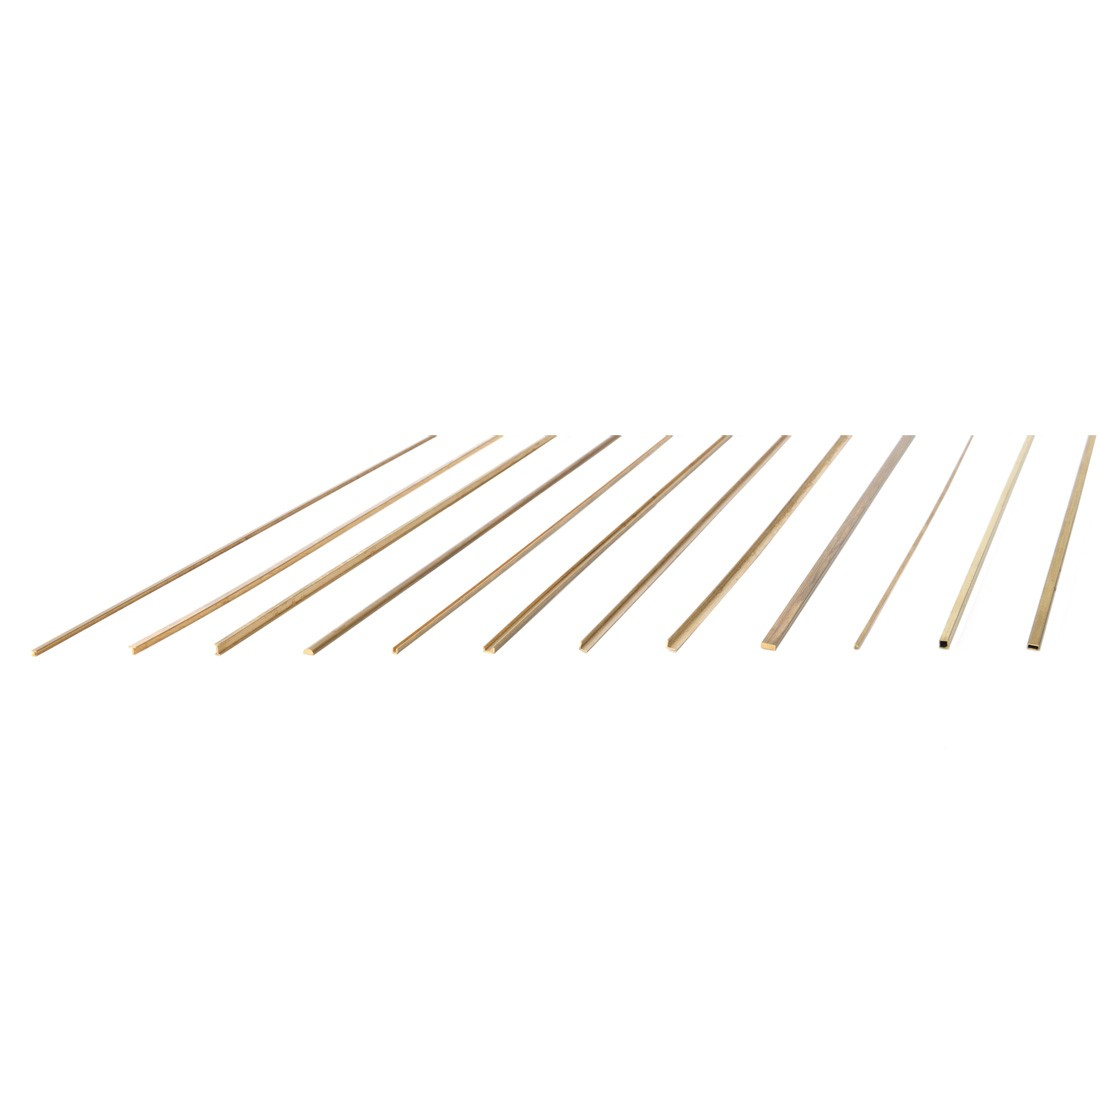 Brass microsections 2x1x500